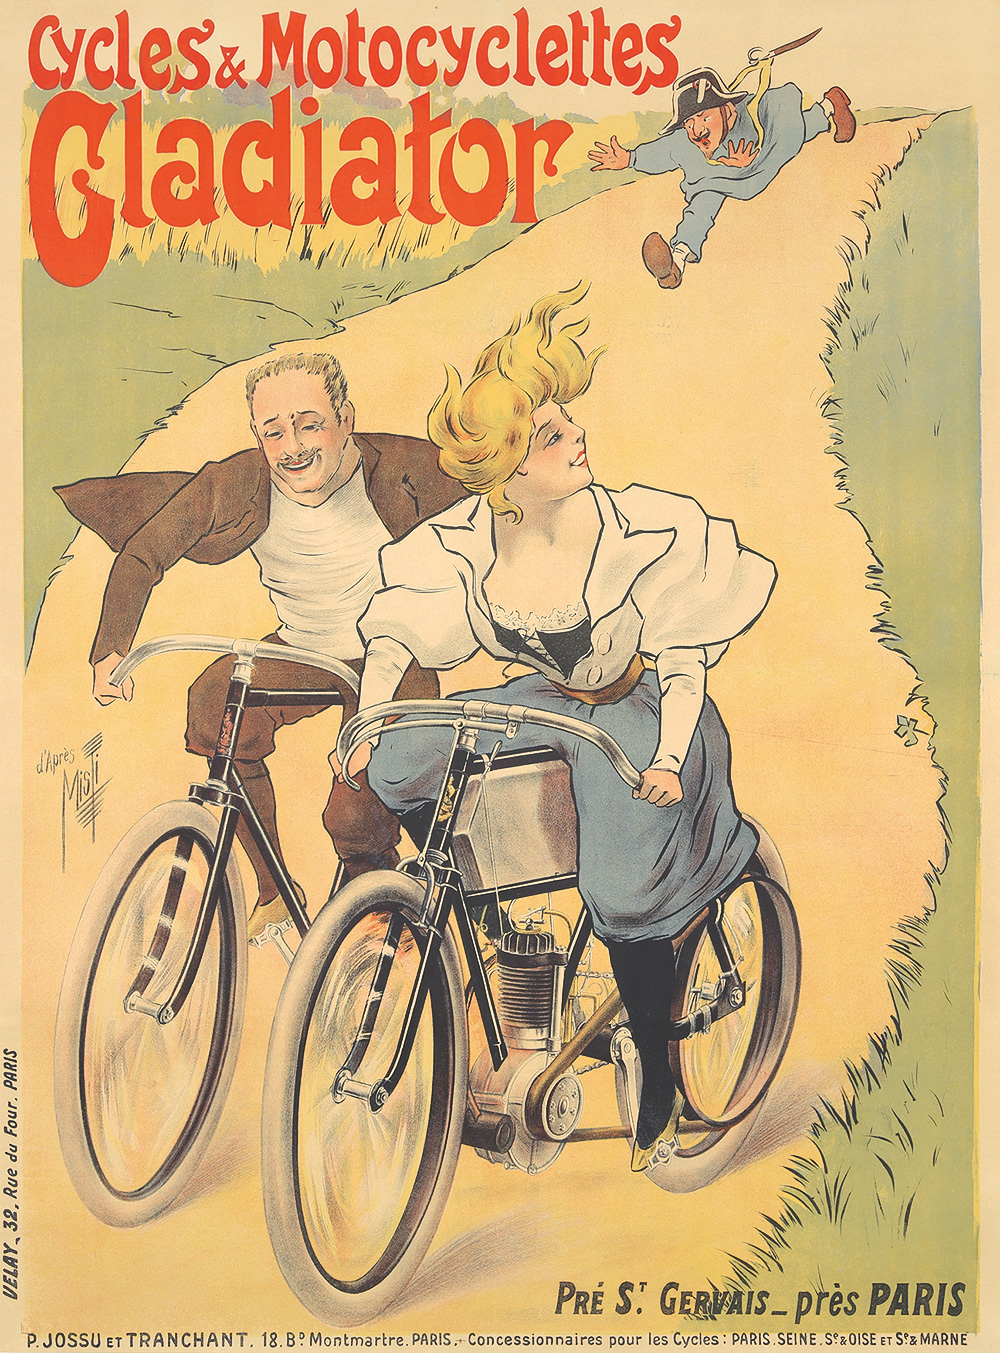 15. Cycles & Motocyclettes Gladiator. 1899.